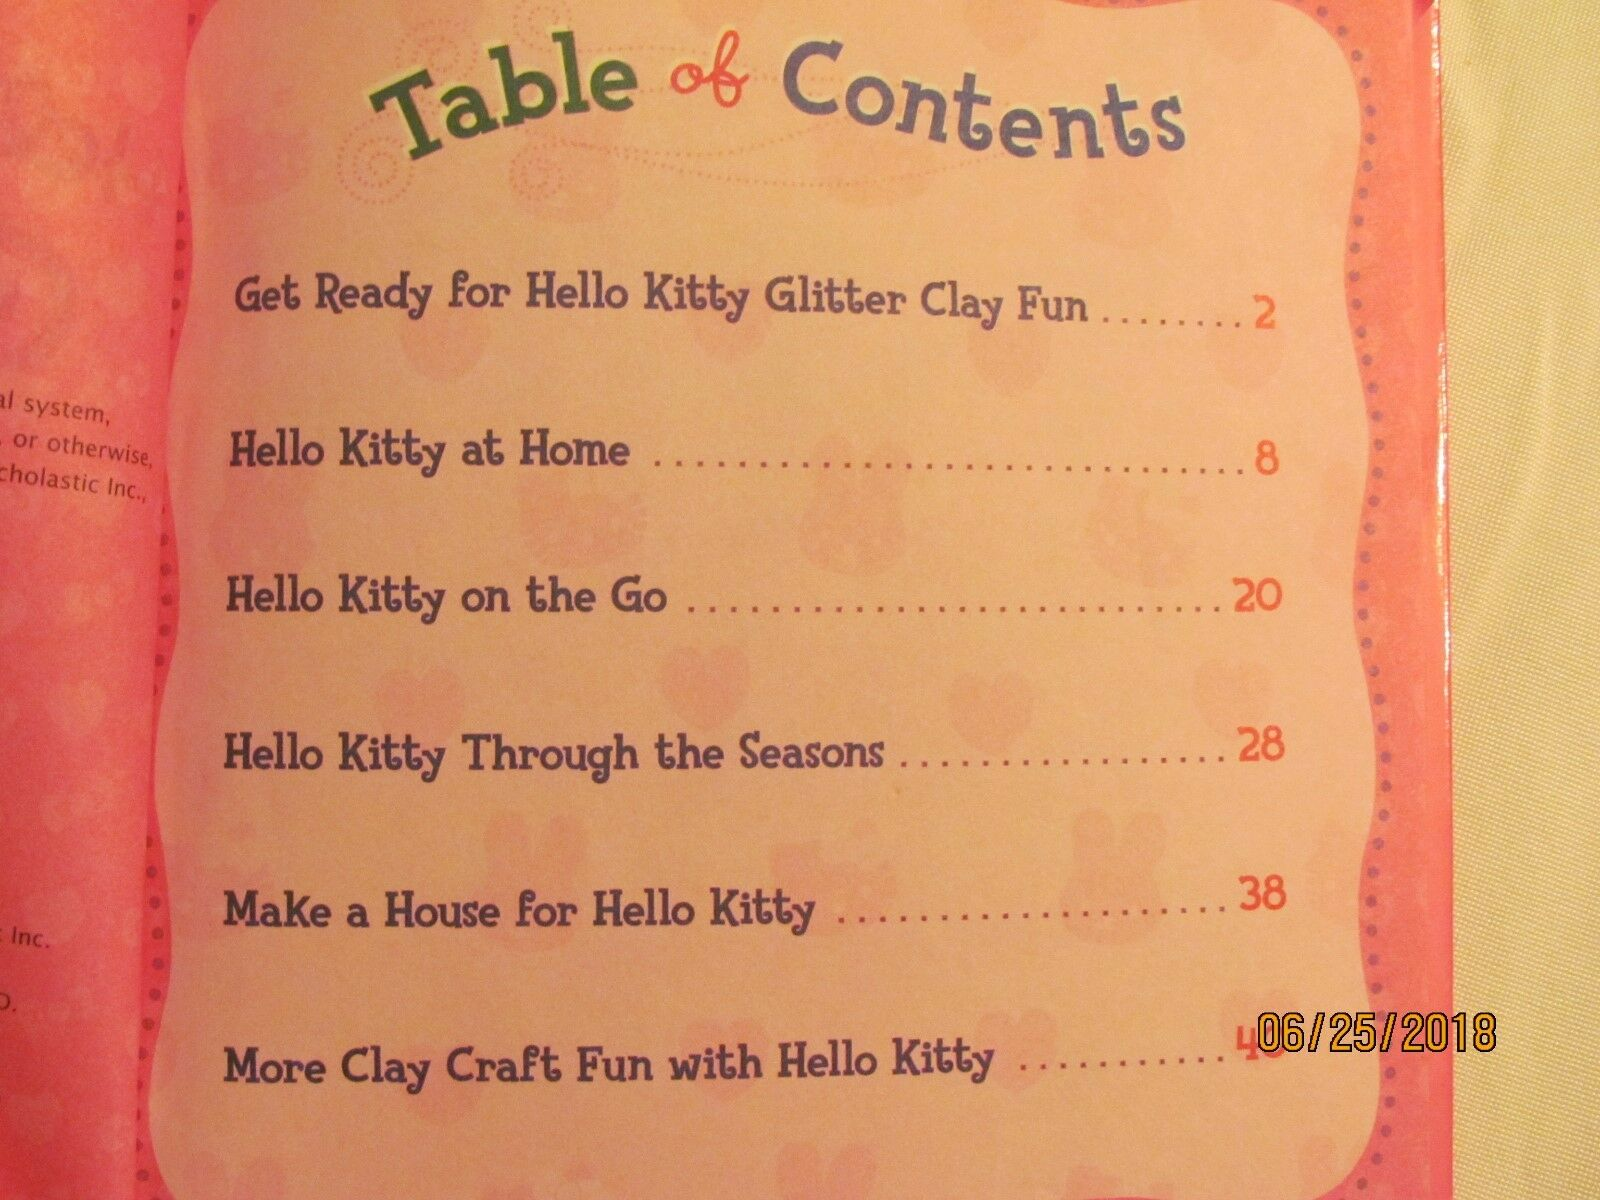 Hello Kitty Glitter Clay Activity Book By Deborah Schecter 2001 Book Illustrated